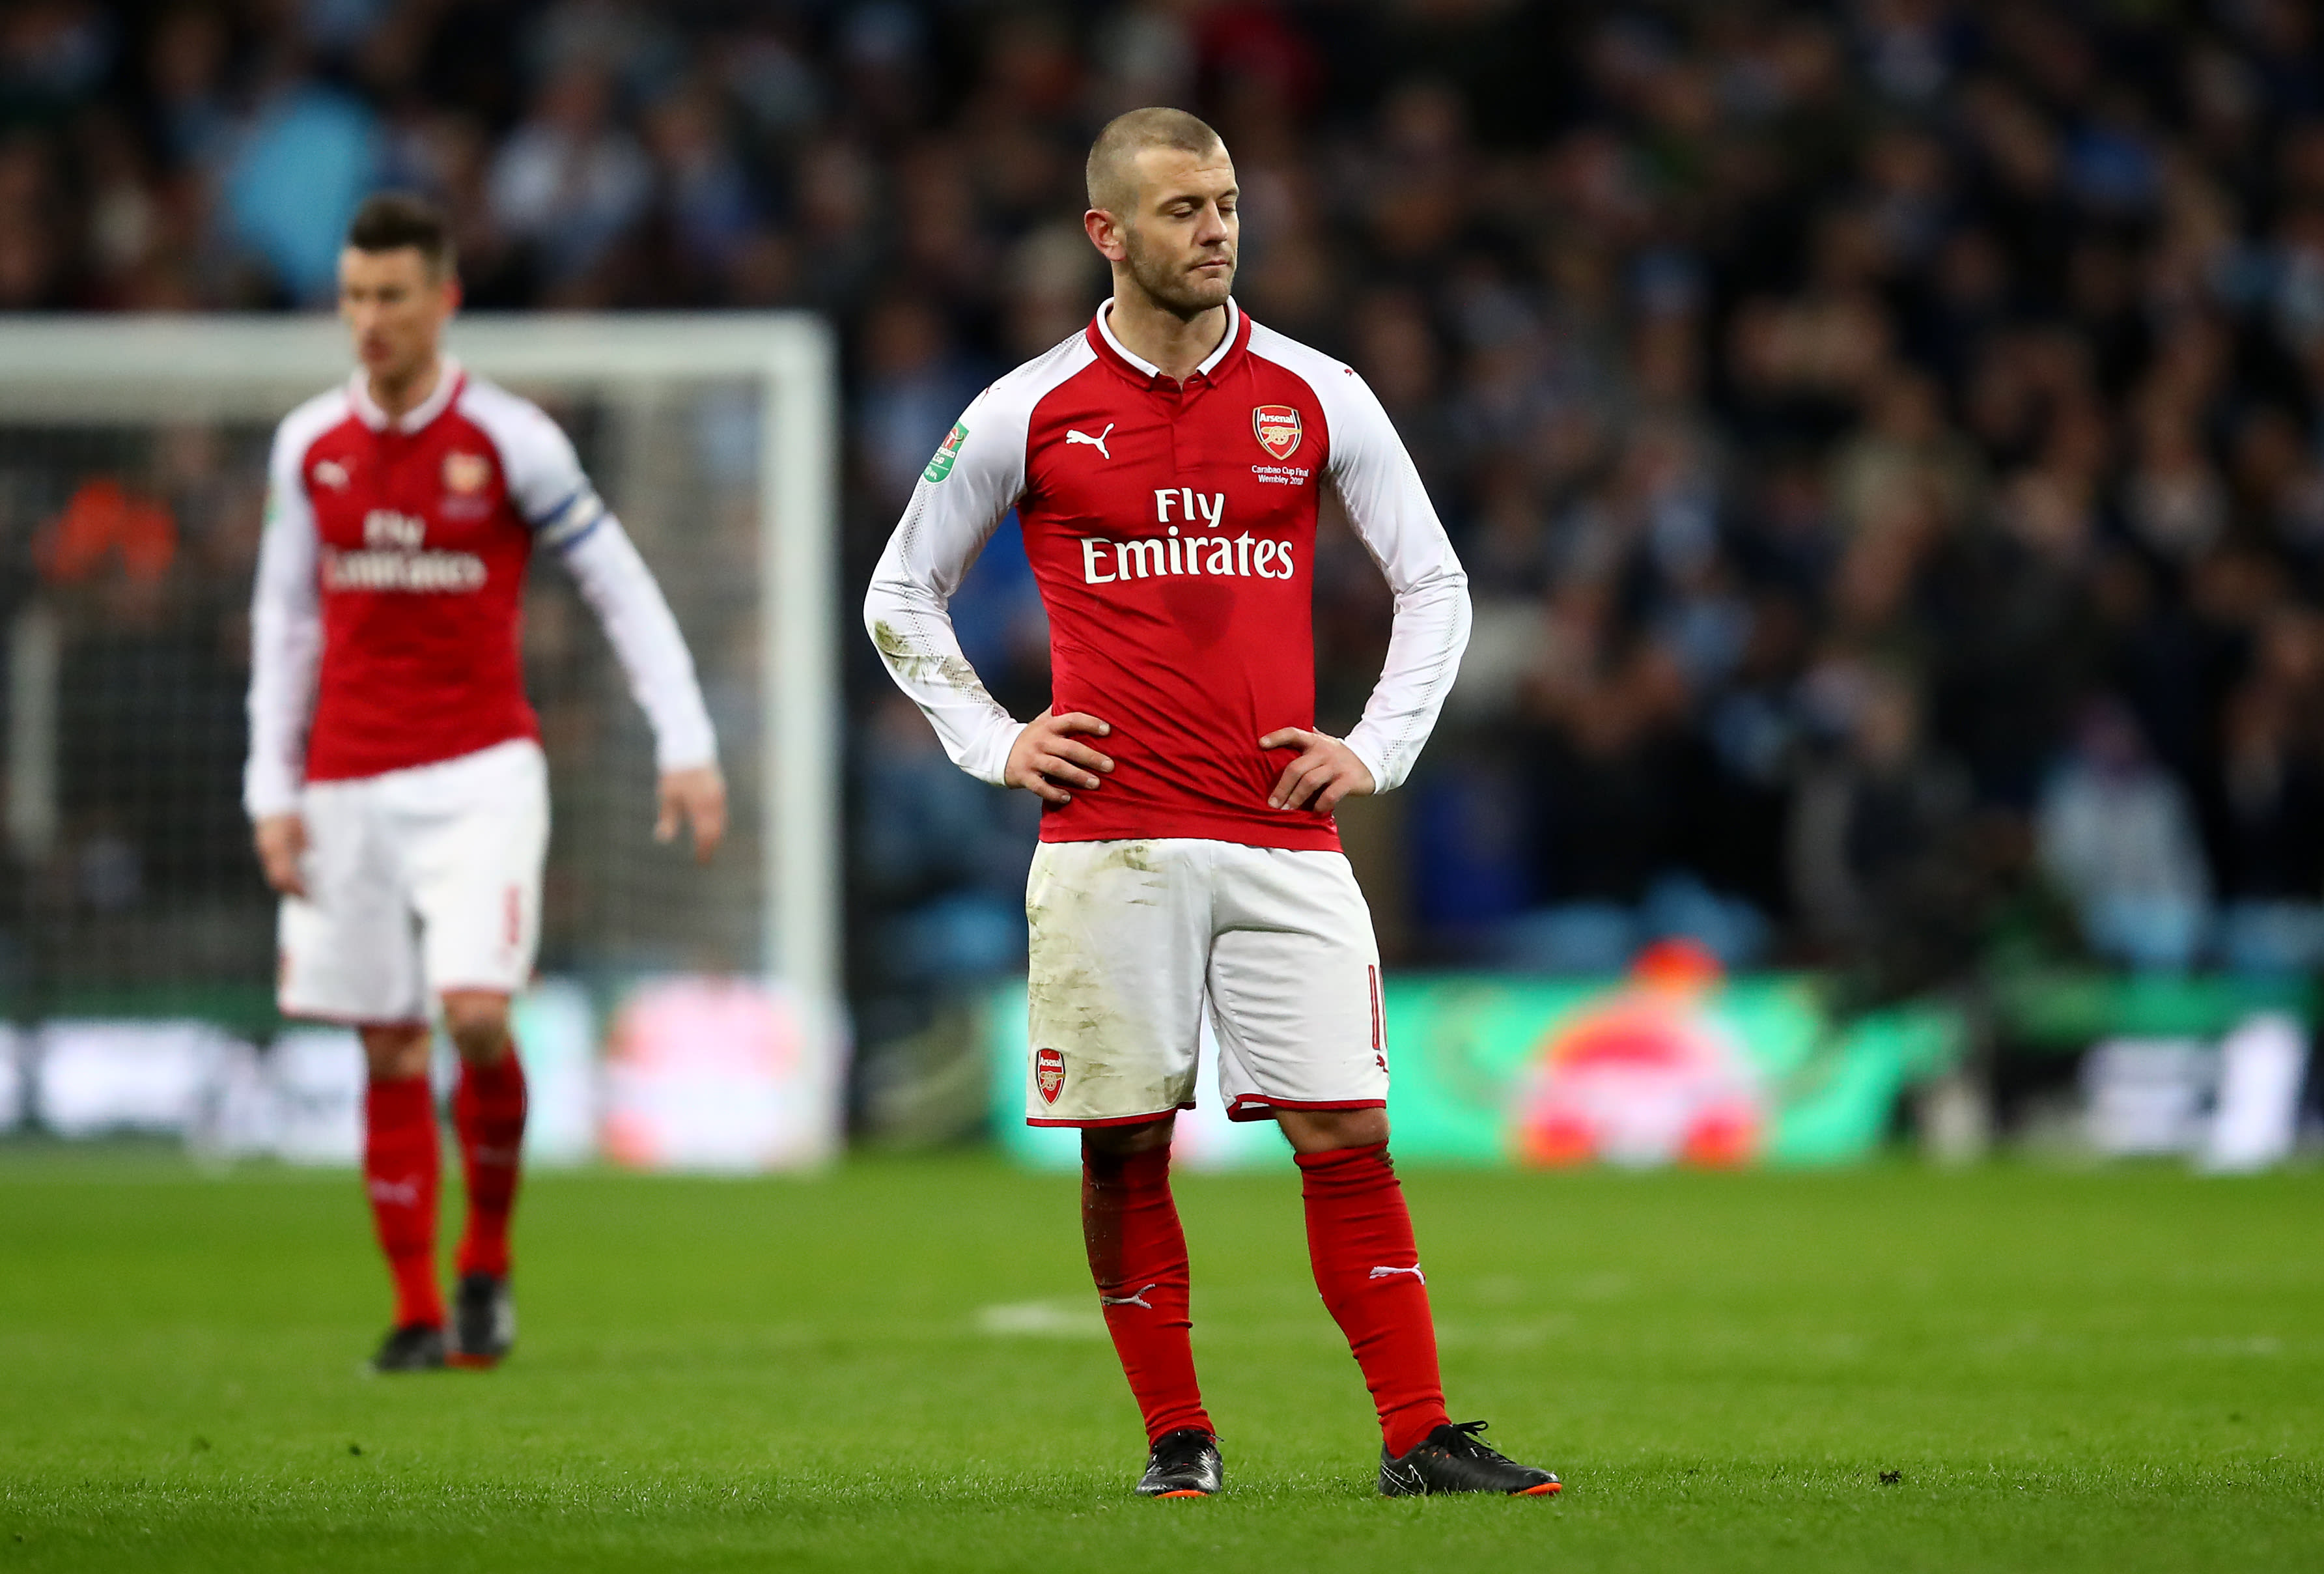 Arsenal vs Manchester City player ratings: Shock and awe?